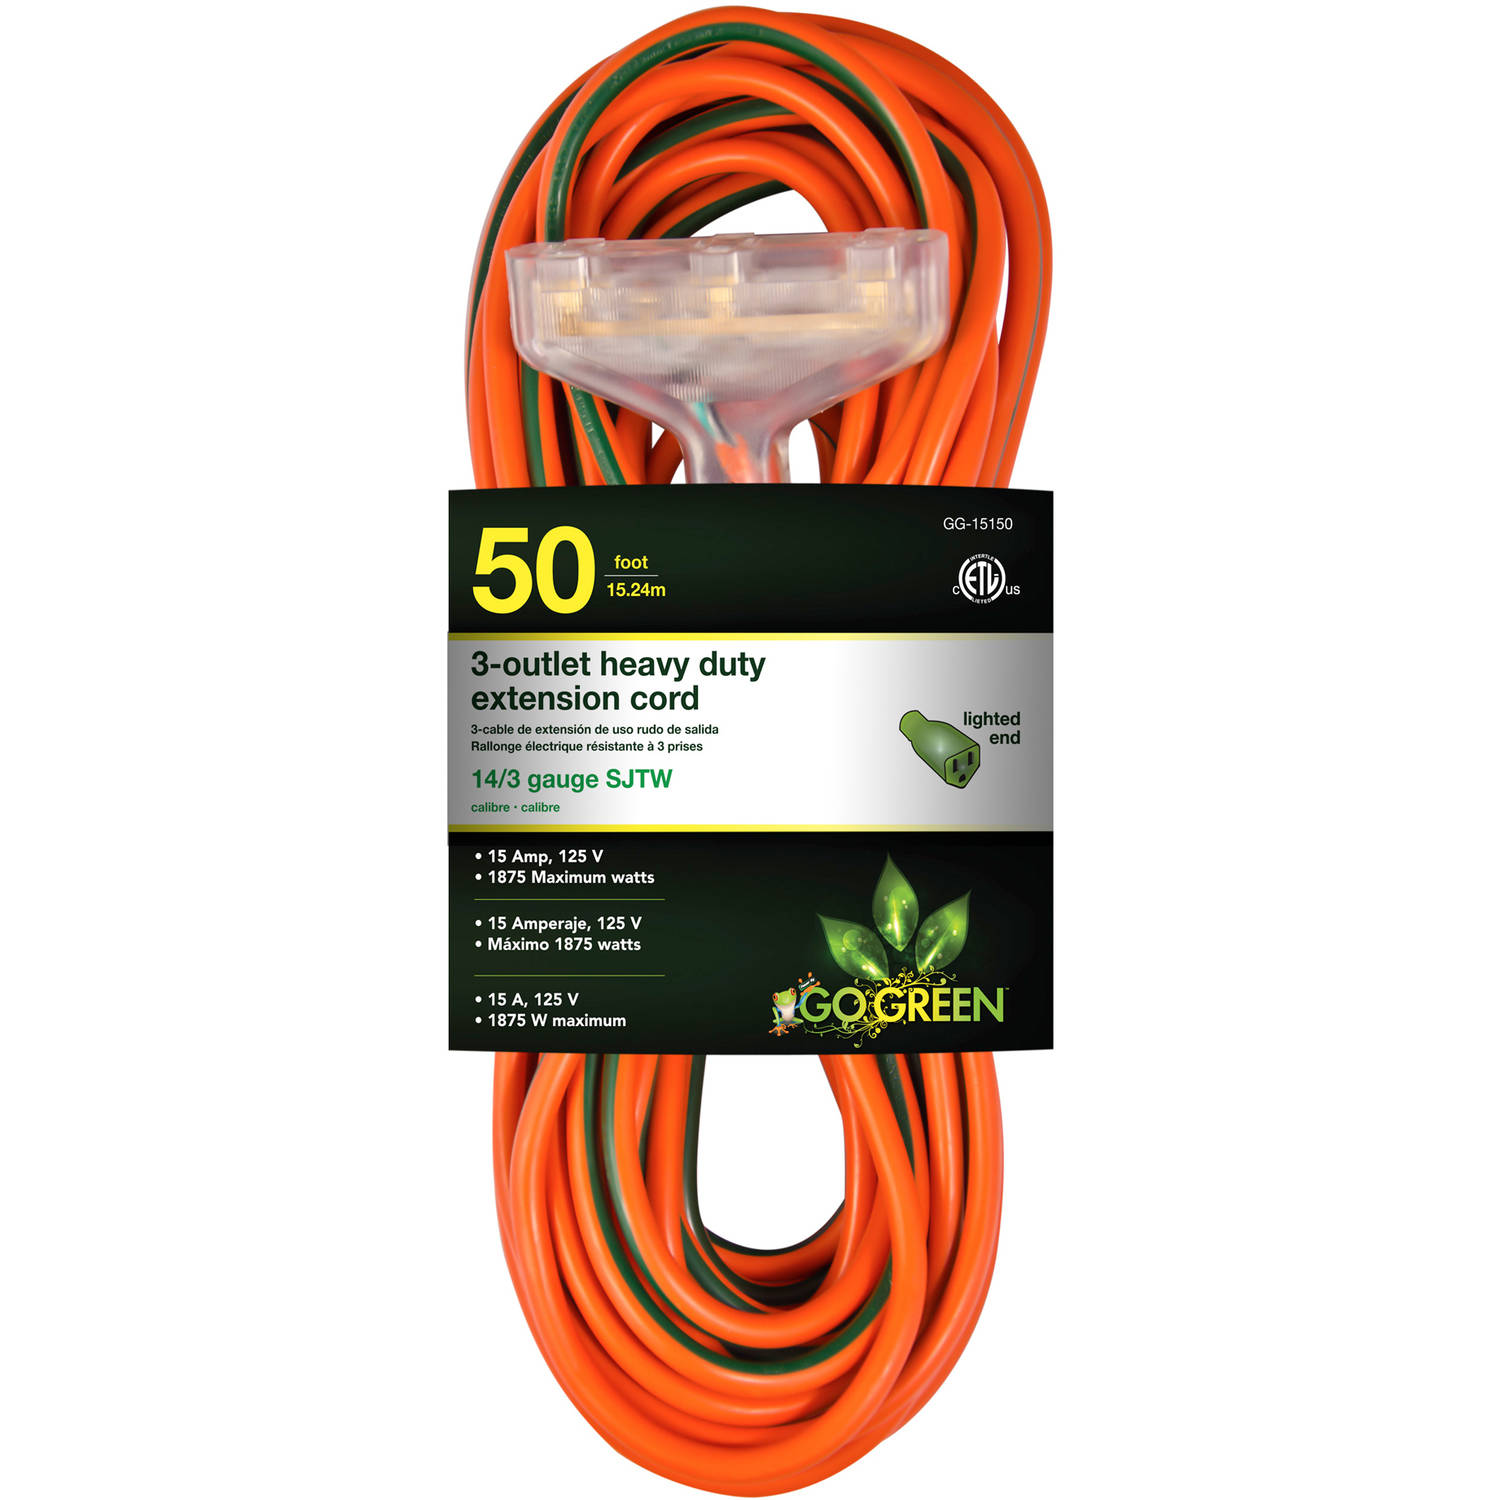 GoGreen Power 14/3 50' 15150 3-Outlet Heavy Duty Extension Cord, Lighted End